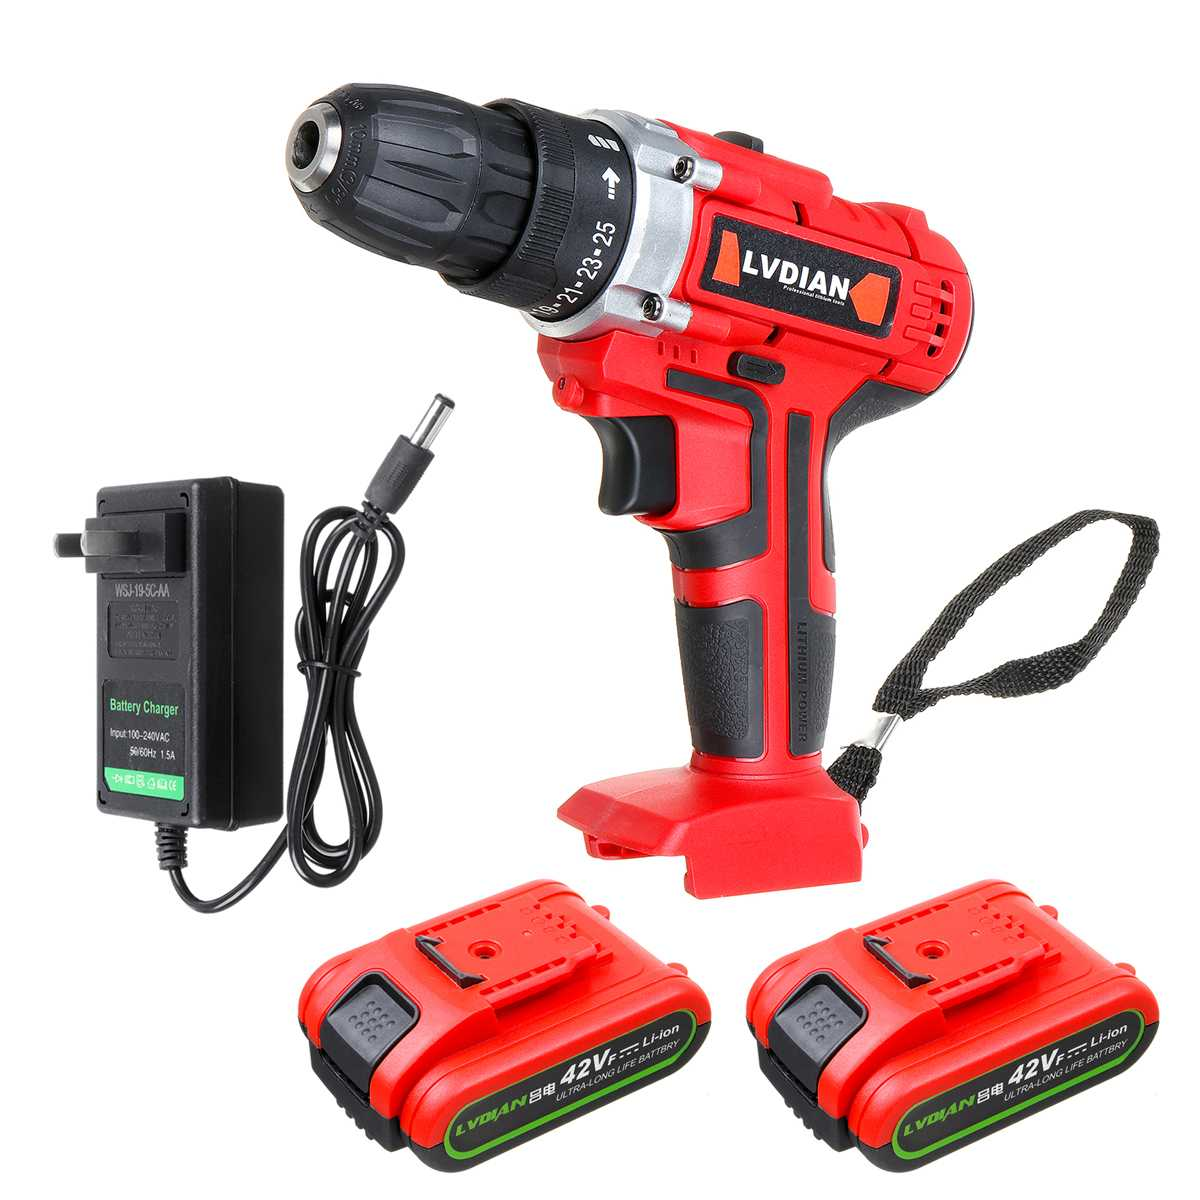 1/2 Battery Electric Drill Electric Cordless Impact Drill 42V Double Speed 50Nm Screwdriver 25+1 Torque Power LED Light Polisher|Electric Drills| |  - title=